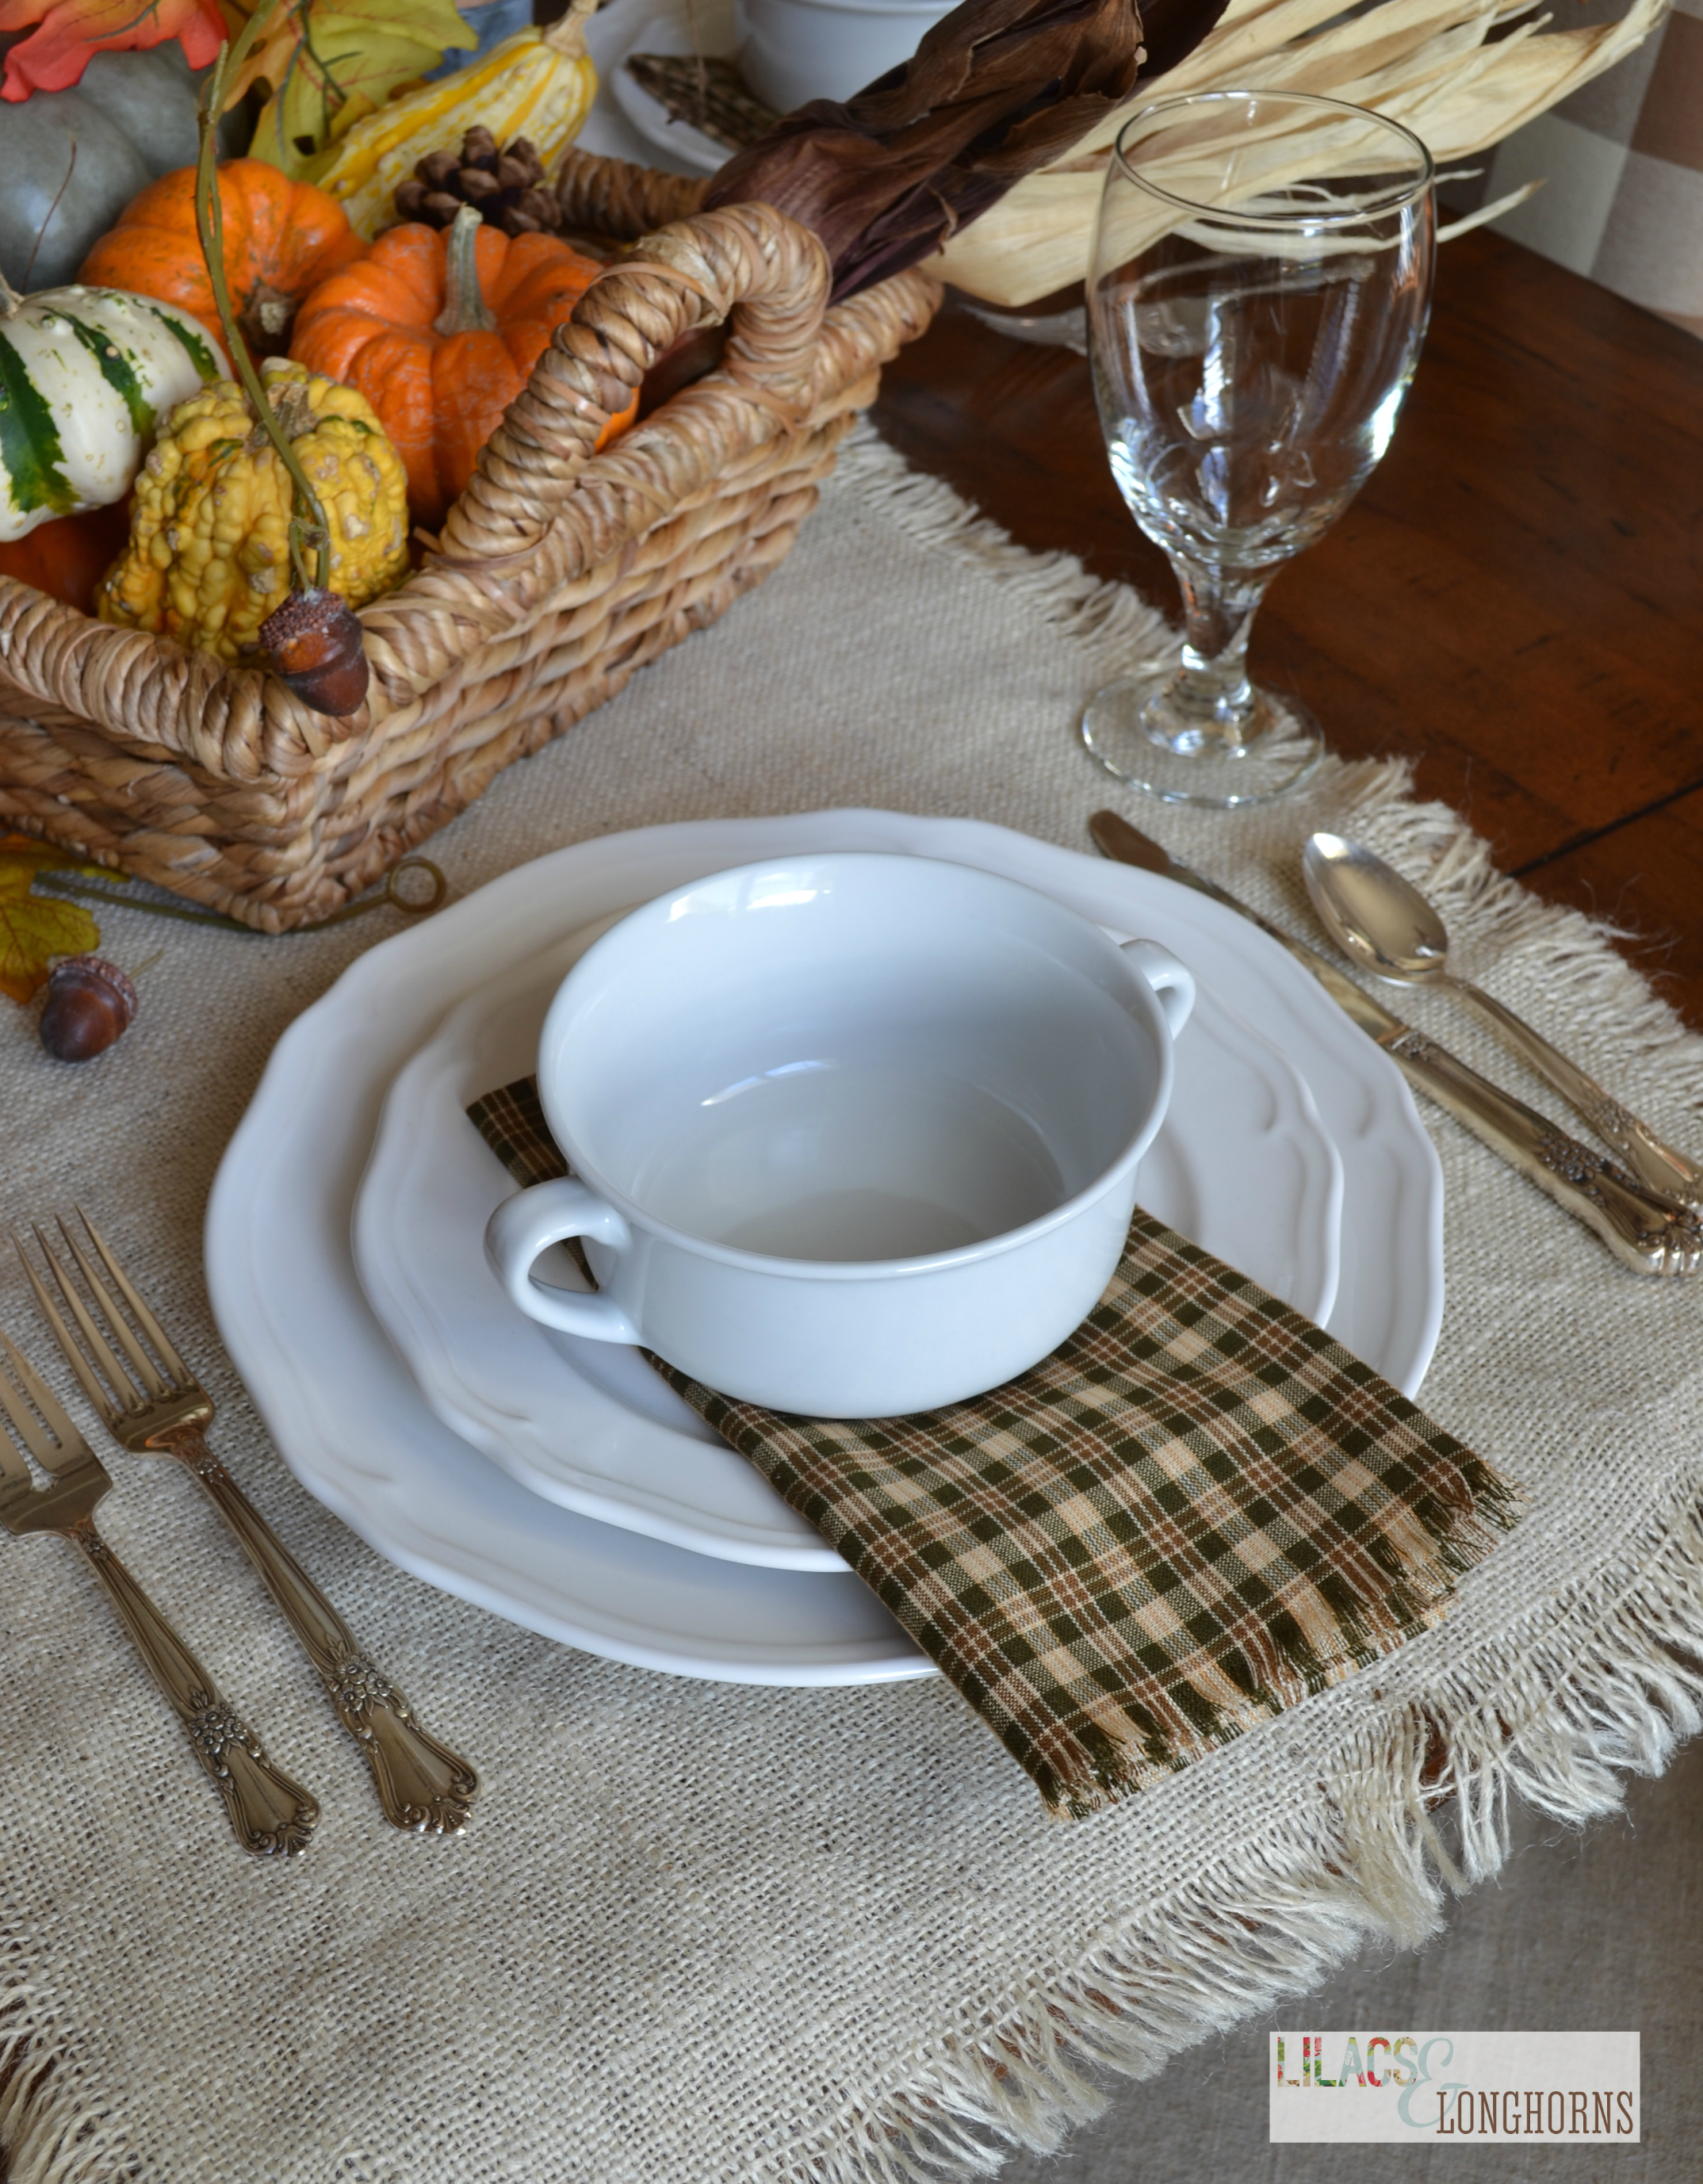 Beautiful place setting - Finding Home Change colors and type of foliage for each holiday, Beautiful Fall place setting with galvanized gather tags. 26 Lovely Thanksgiving Table Decor and Place Setting Ideas Neutral Place setting with kraft paper, striped napkins, and feathers. A Simple, Yet Beautiful Thanksgiving Setup — STUDIO MCGEE See more.